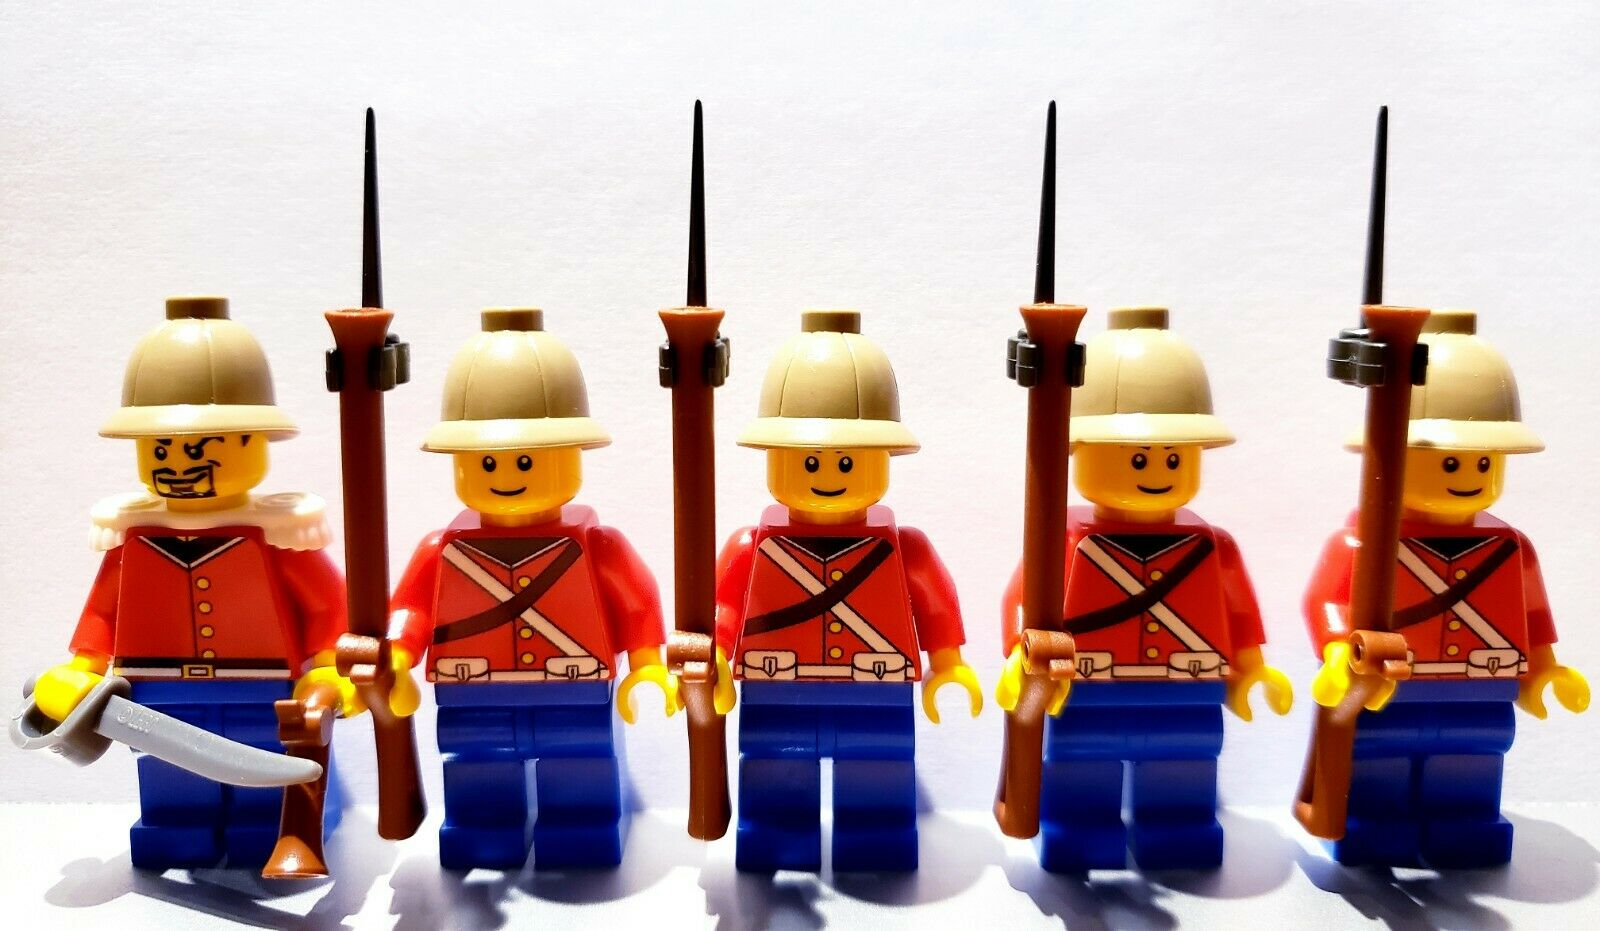 Lego PIRATES BRITISH ANGLO-ZULU WAR Line Infantry Soldiers MINIFIGS